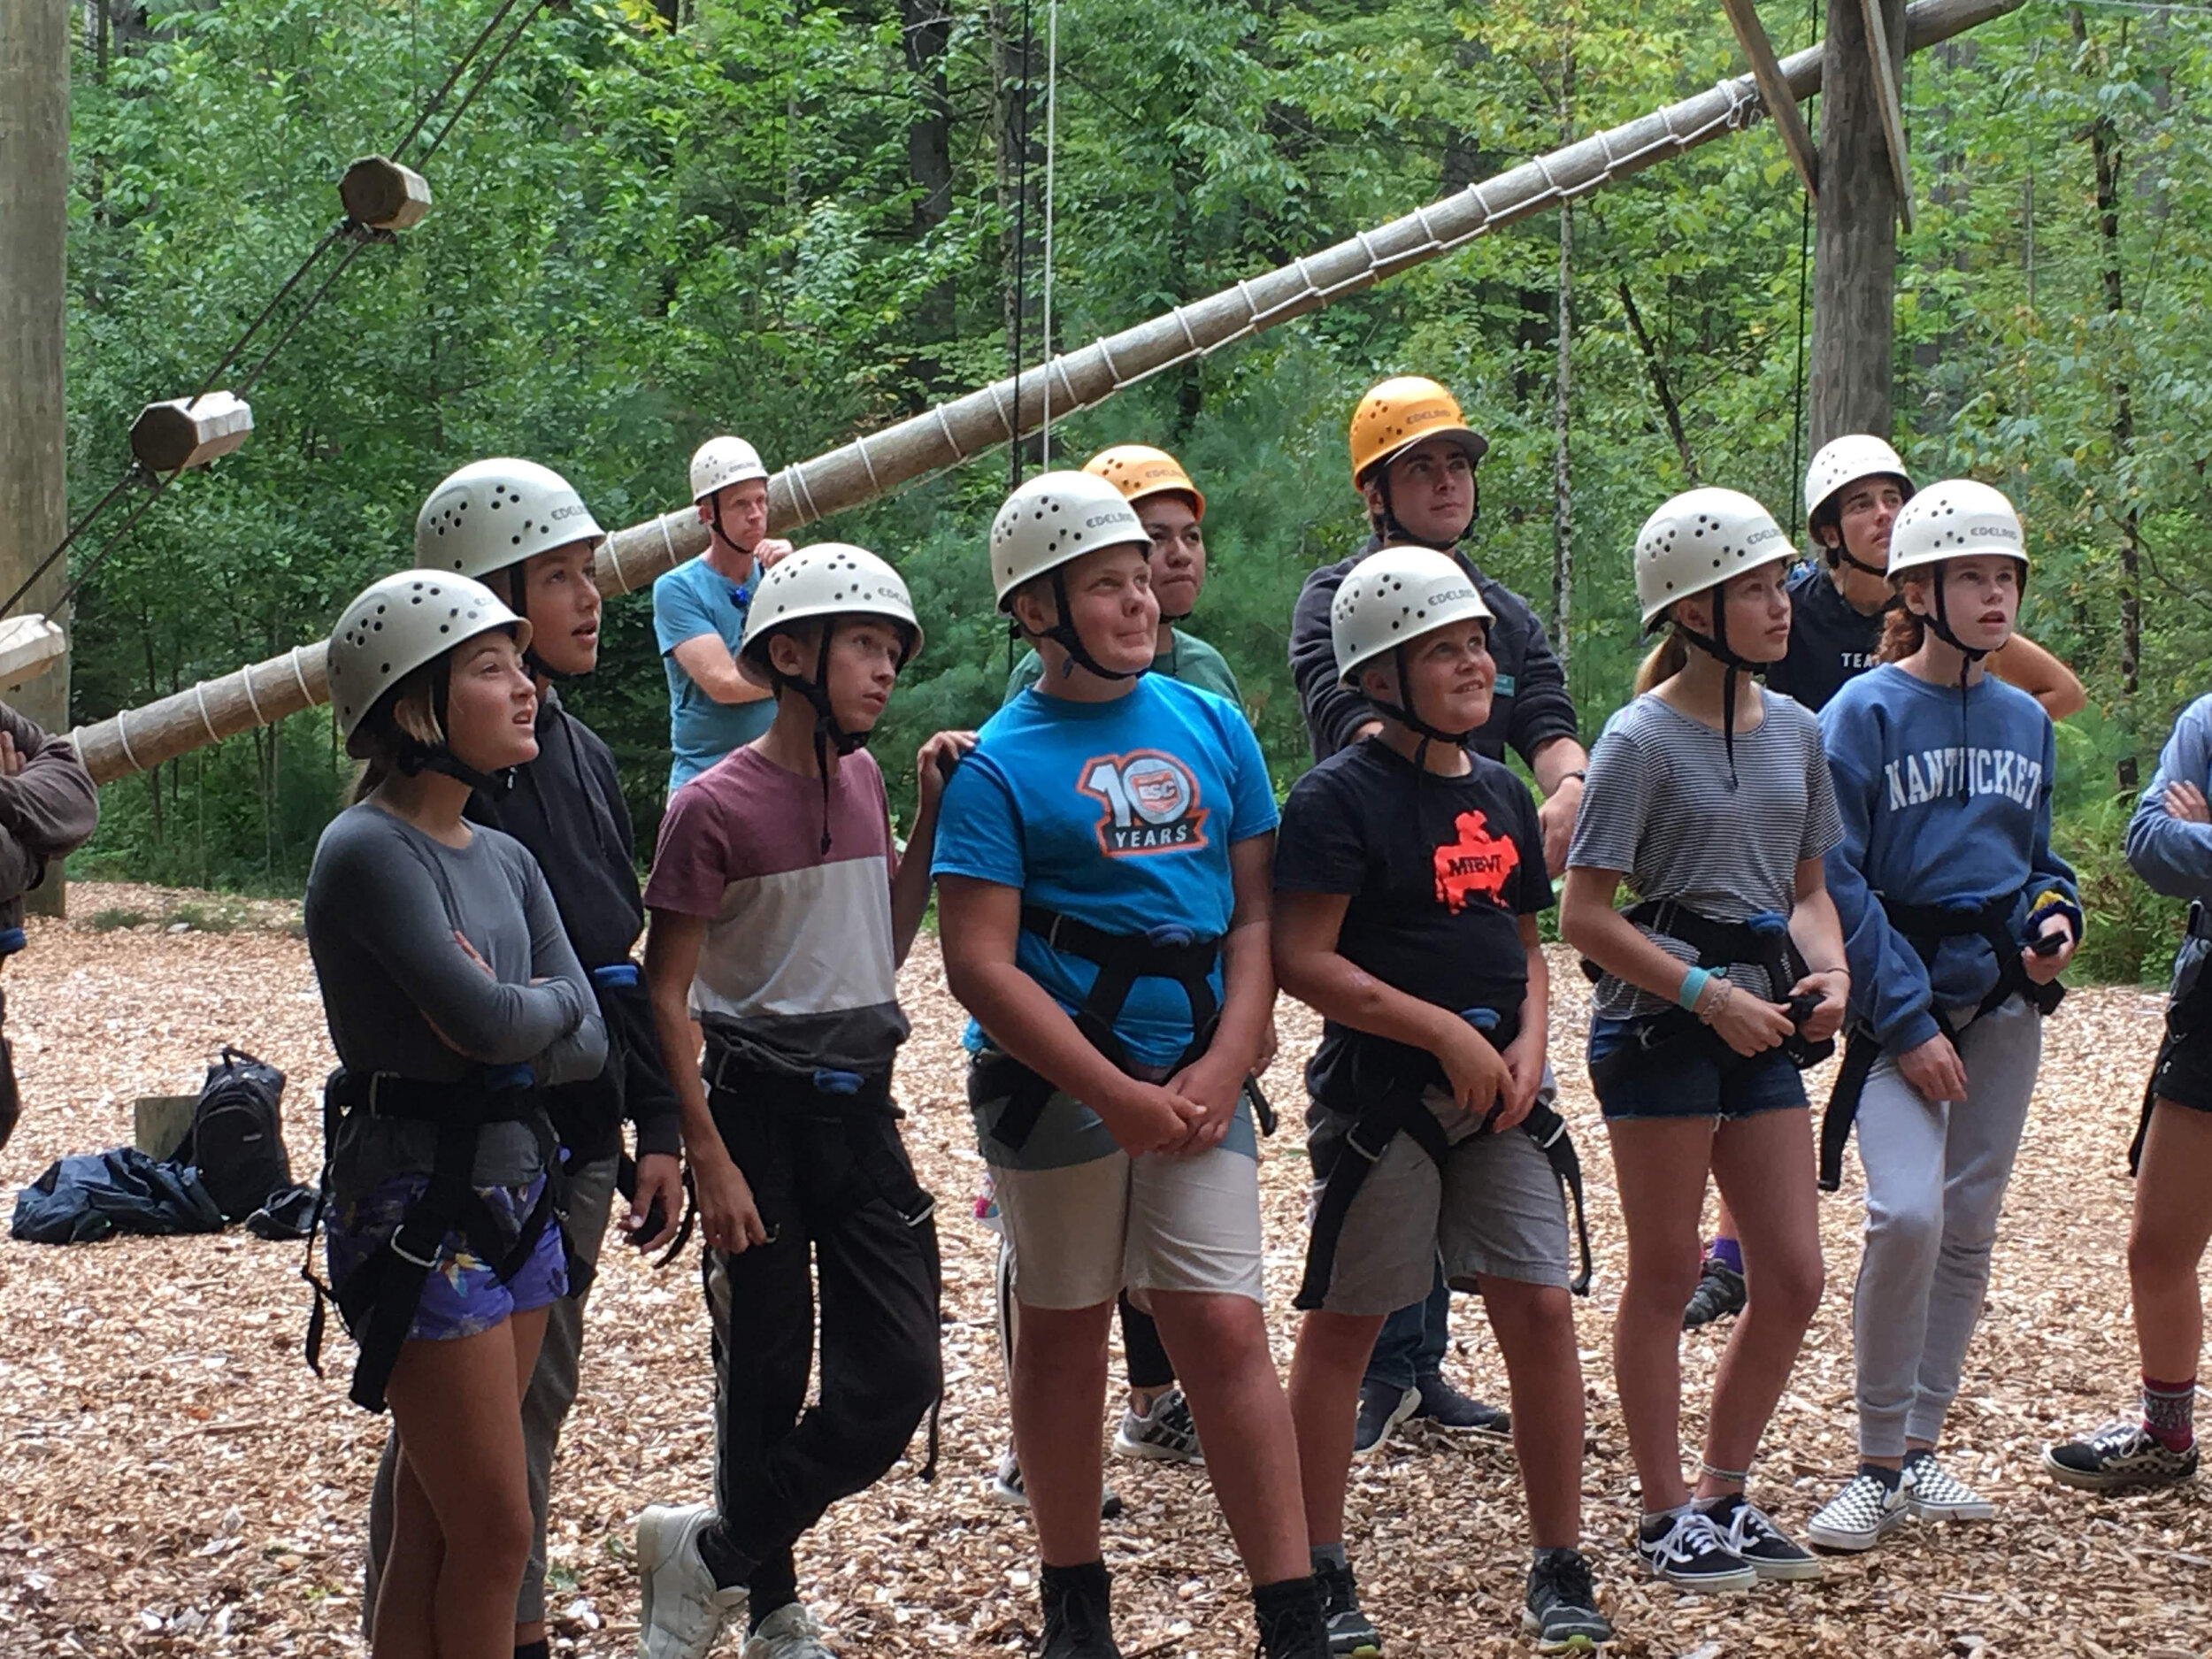 Brooklynn, Gus, CJ, Nick, Clint, Lacey, and Emily, from Aqua and Terra houses, listened carefully to the safety orientation and planned their personal challenges on the high ropes course at Hulbert Outdoor Center last week.